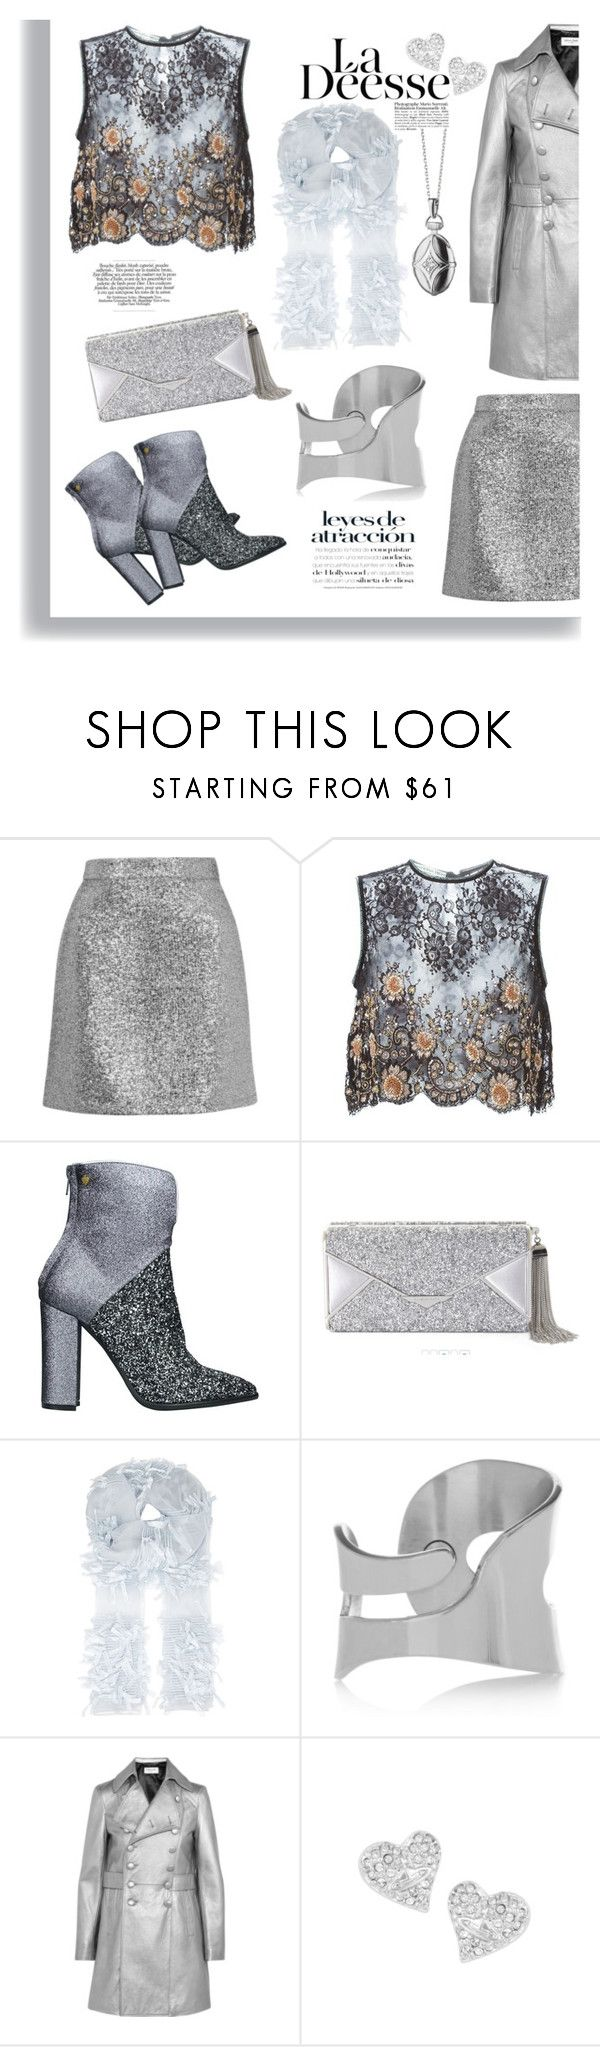 """Silver Moment"" by ildiko-olsa on Polyvore featuring Topshop, Alessandra Rich, Lara Hampton, BCBGMAXAZRIA, Armani Collezioni, MM6 Maison Margiela, Yves Saint Laurent, Vivienne Westwood and Monica Rich Kosann"